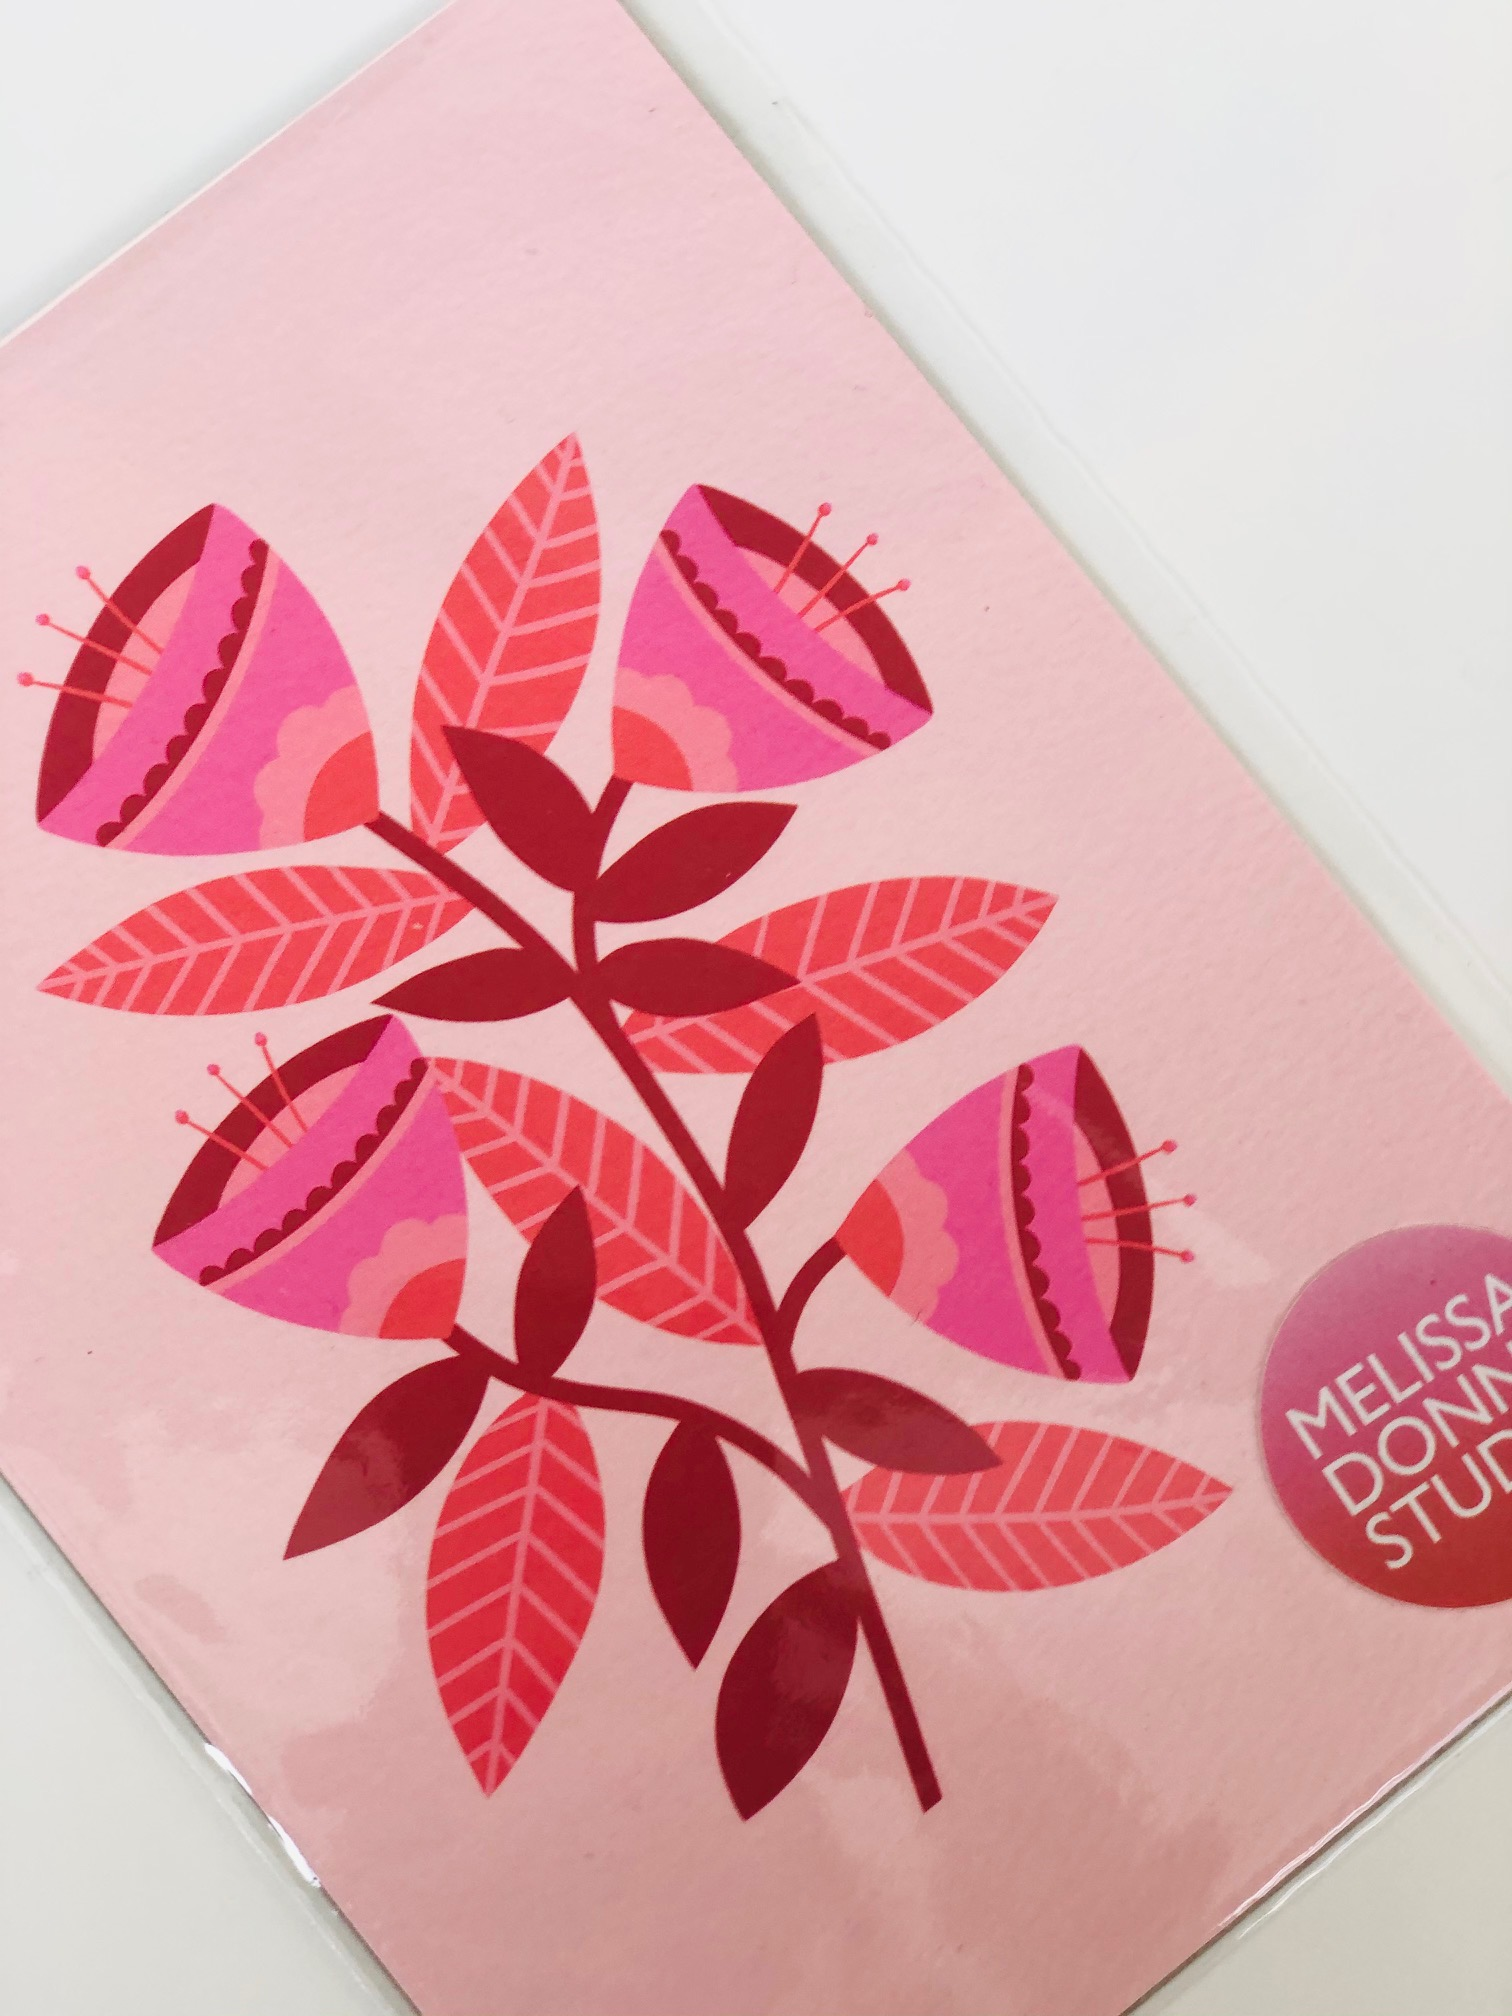 A3 Digital Print 'Pink Flowers' by Melissa Donne